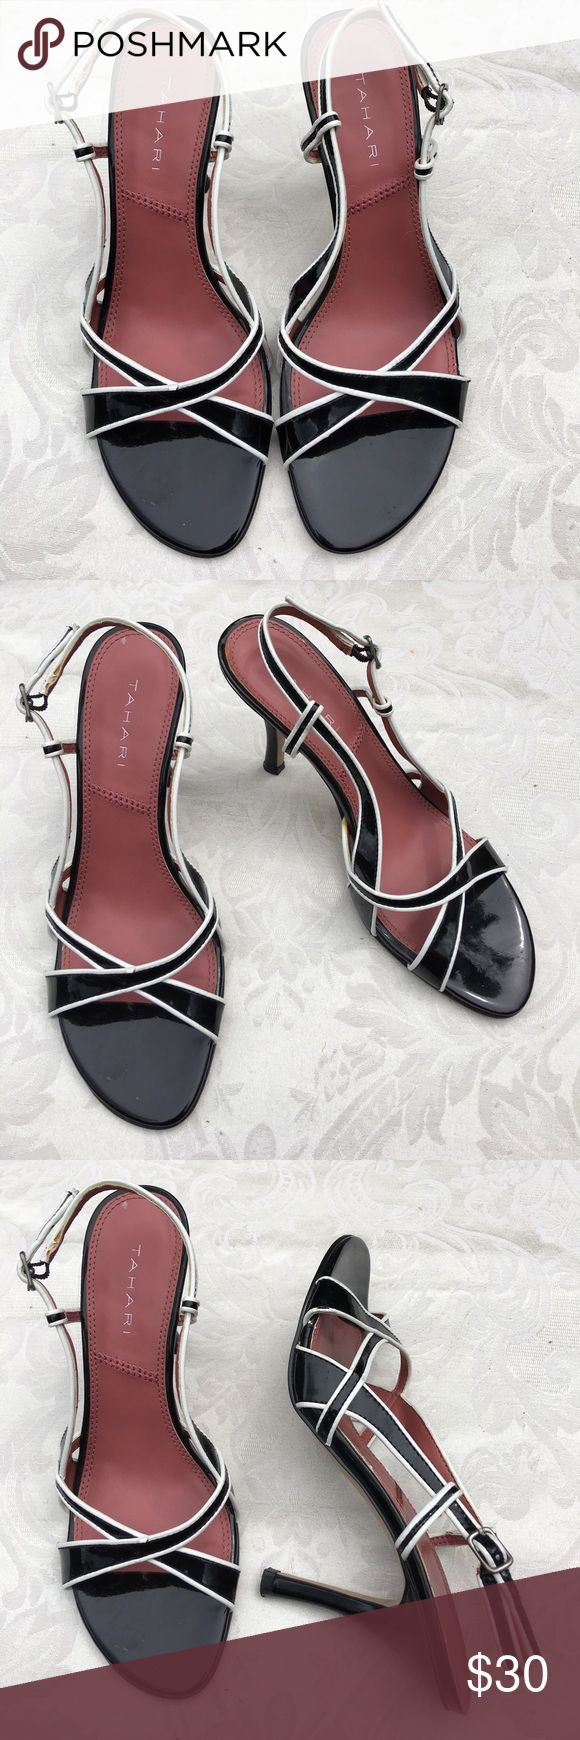 """Tahari """"Taboo"""" Black/White Strappy Shoes 7.5M 7.5M Tahari """"Taboo"""" Black and White Strappy Patent Leather Sandals Shoes. 3 1/2"""" Heels pre-owned in excellent condition. Tahari Shoes Heels"""